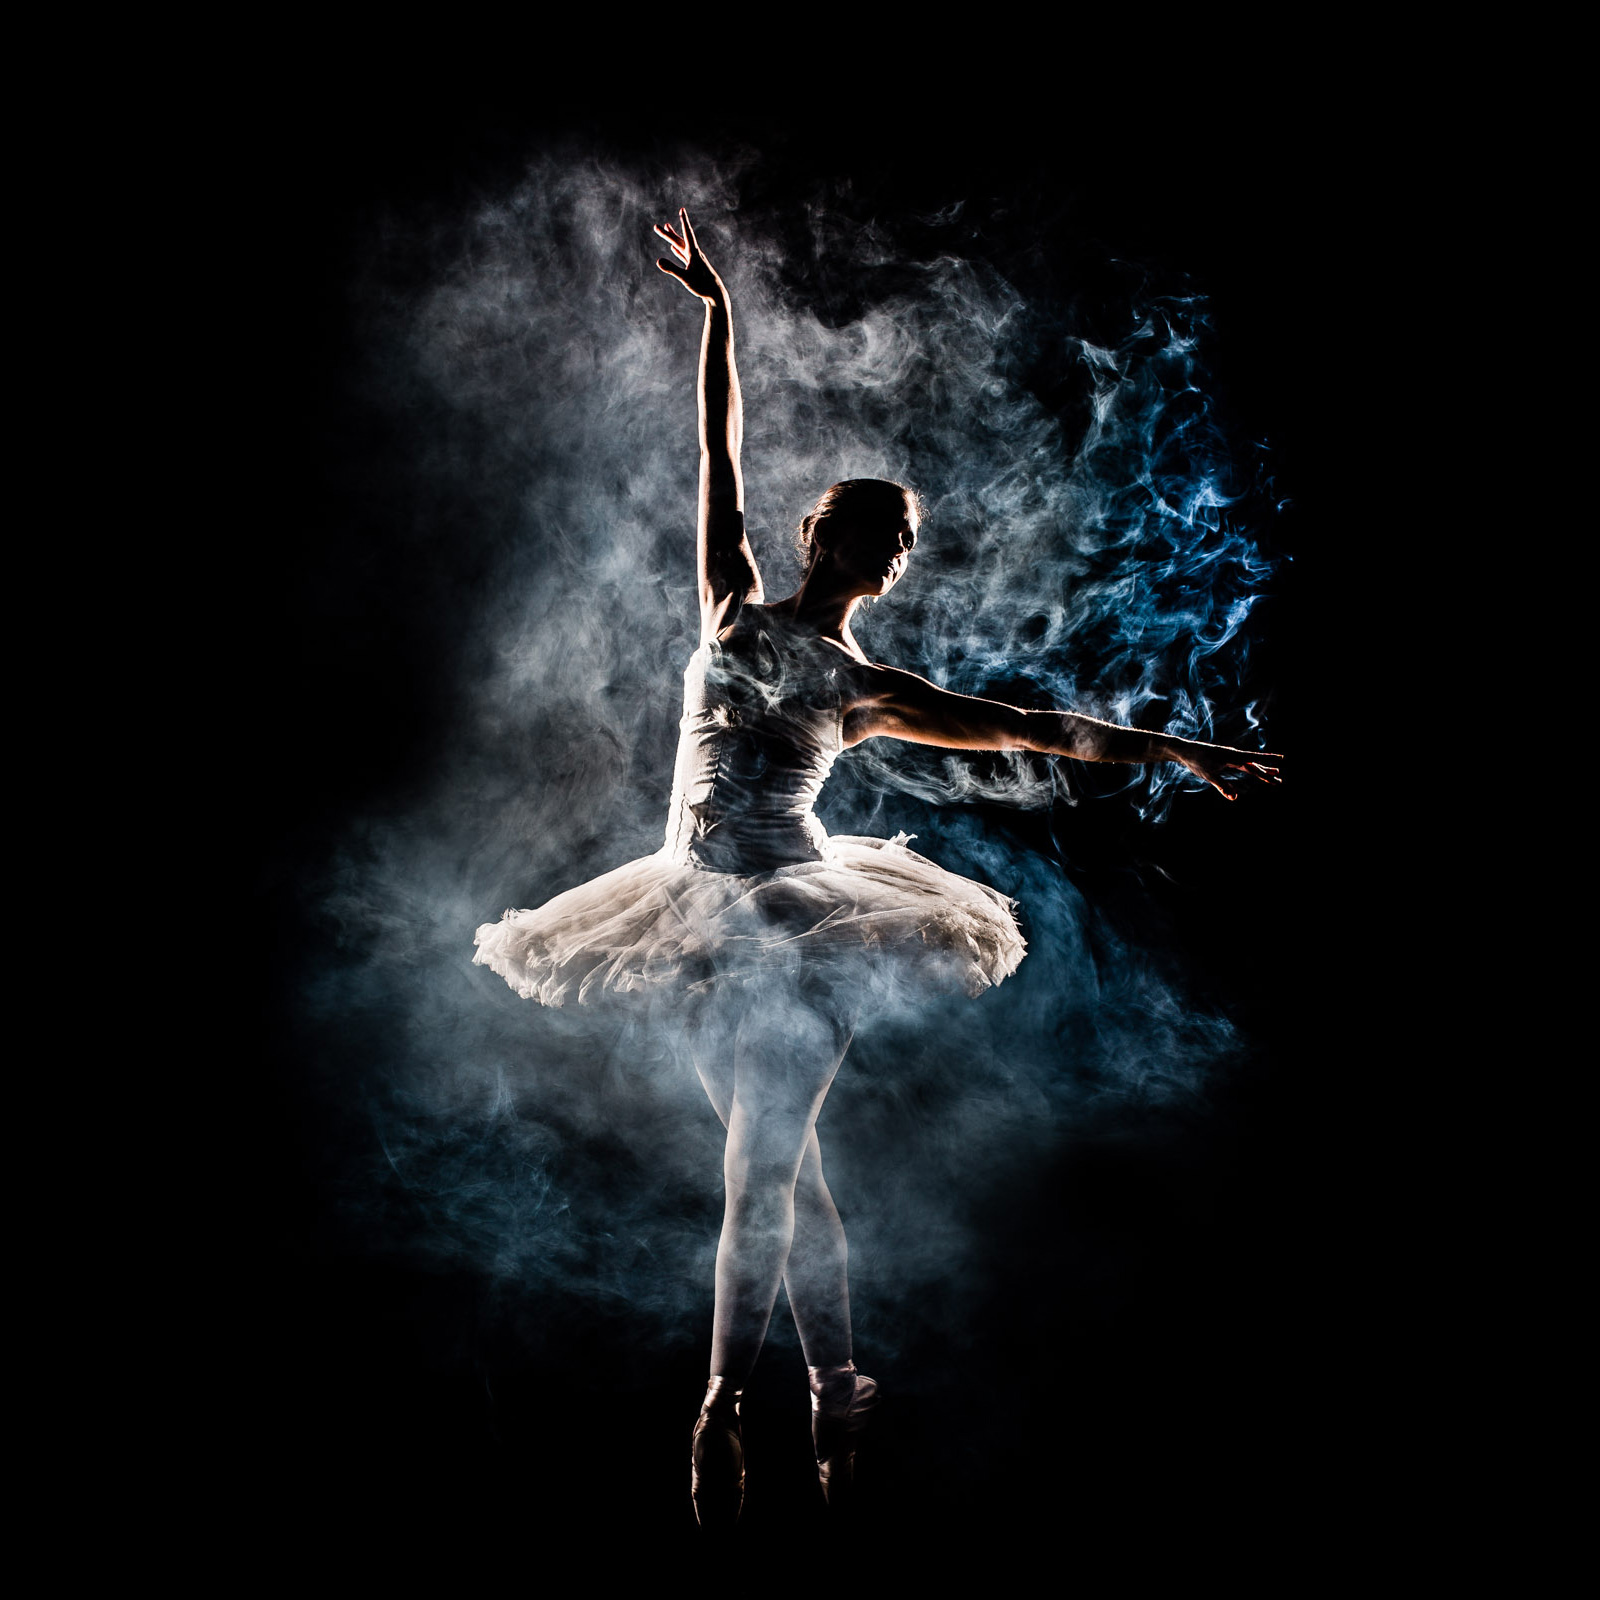 ballerina ballet balletdancer smoke art dancer dance pose position photographer kickass anhede fineart fineartphoto